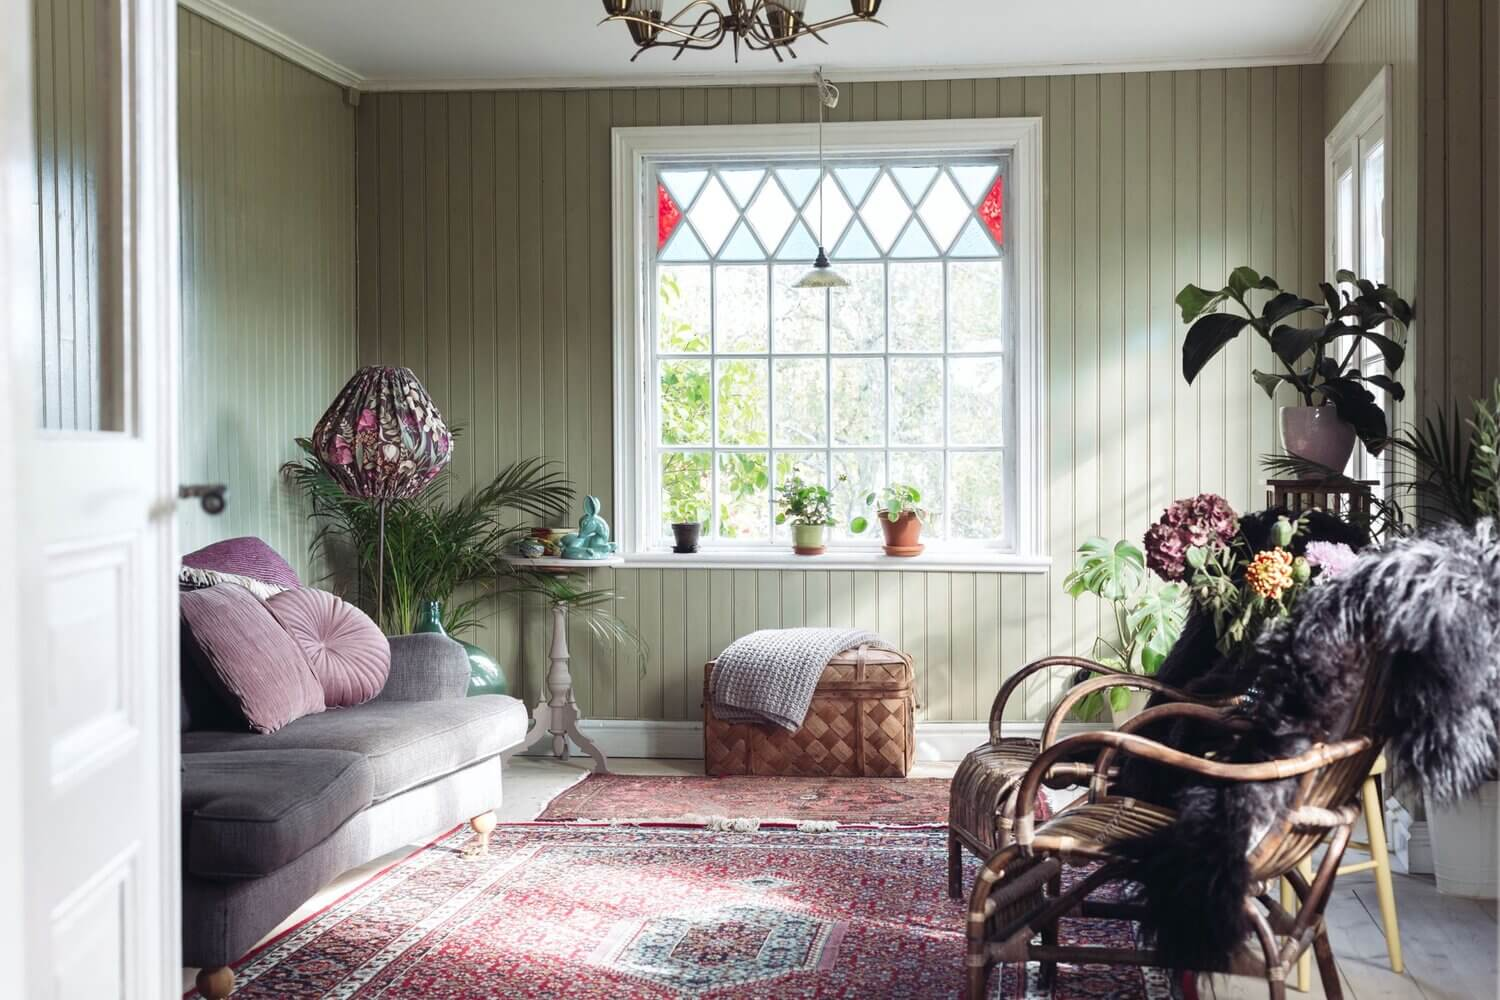 A Cozy Vintage Look For a Traditional Swedish Home